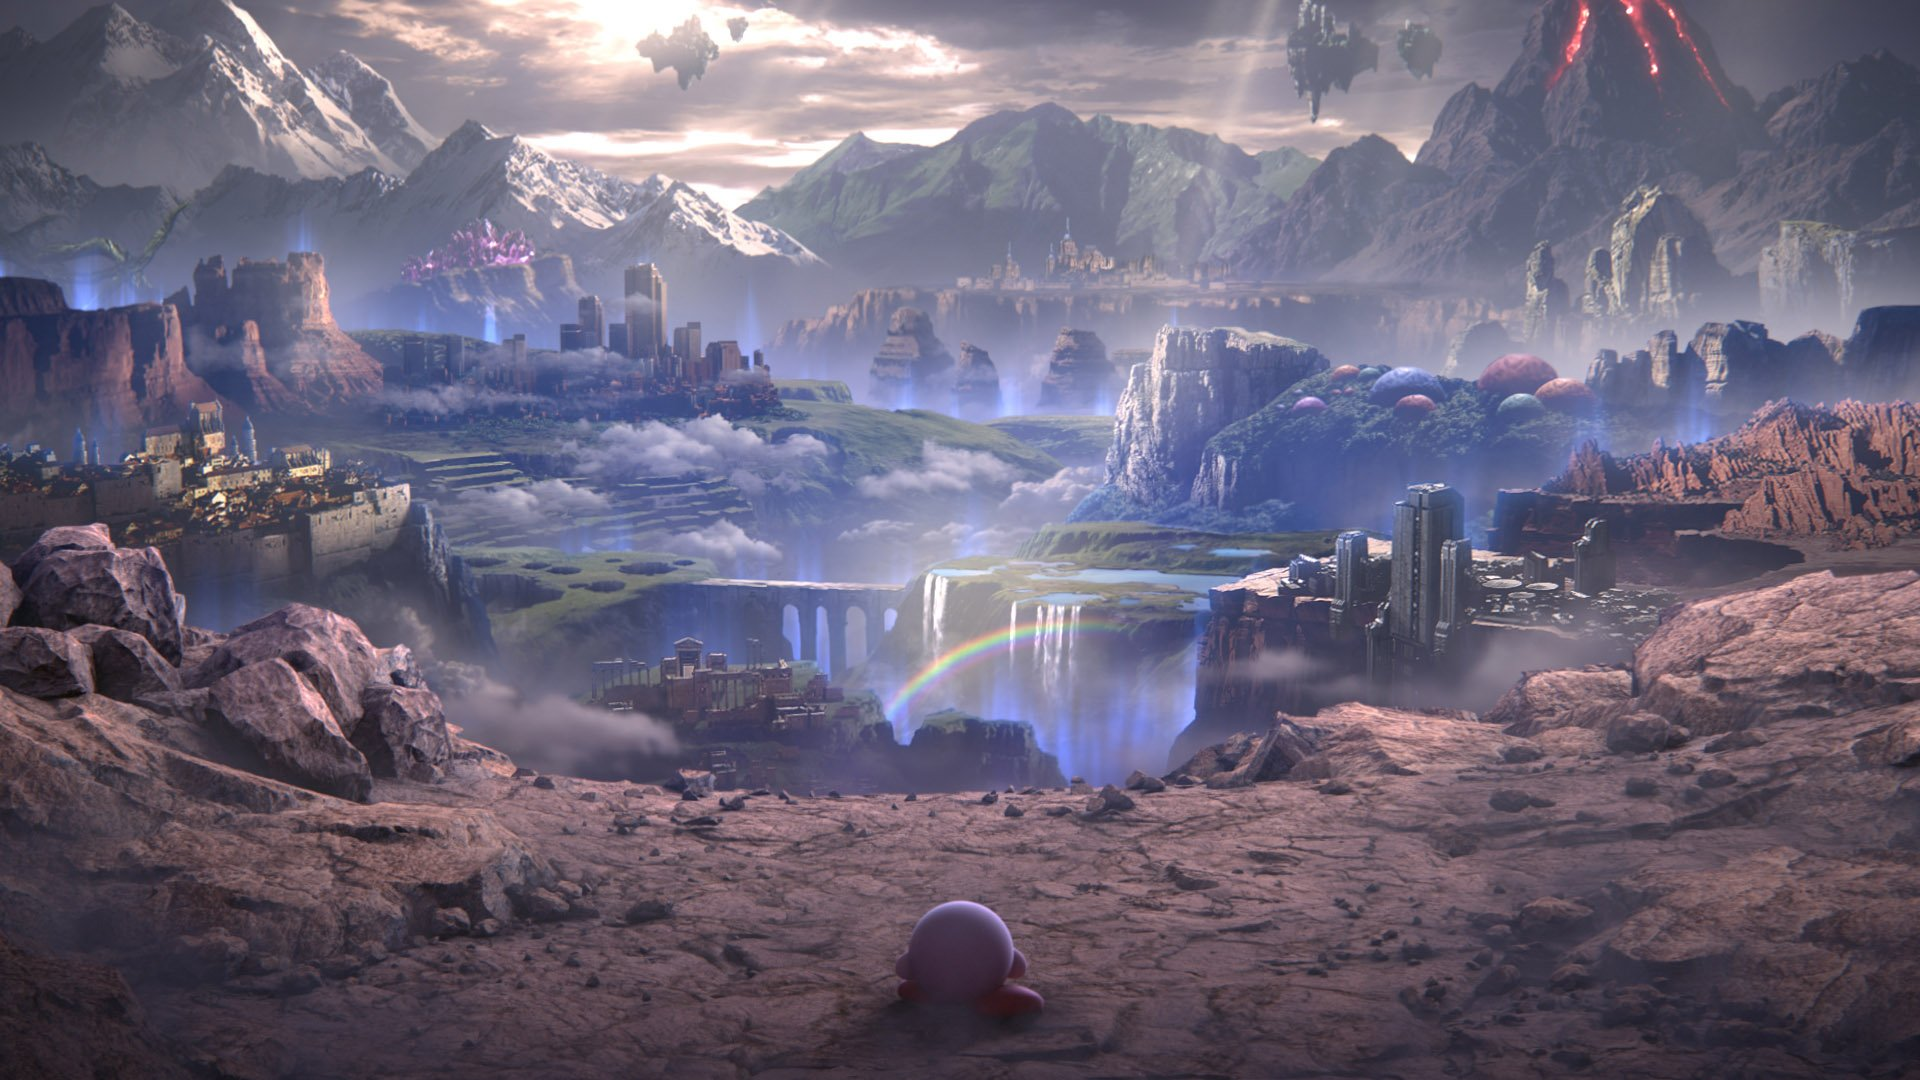 Super Smash Bros Ultimates Story Mode Is Like An Infinity War Based Anime With Kirby As Hero